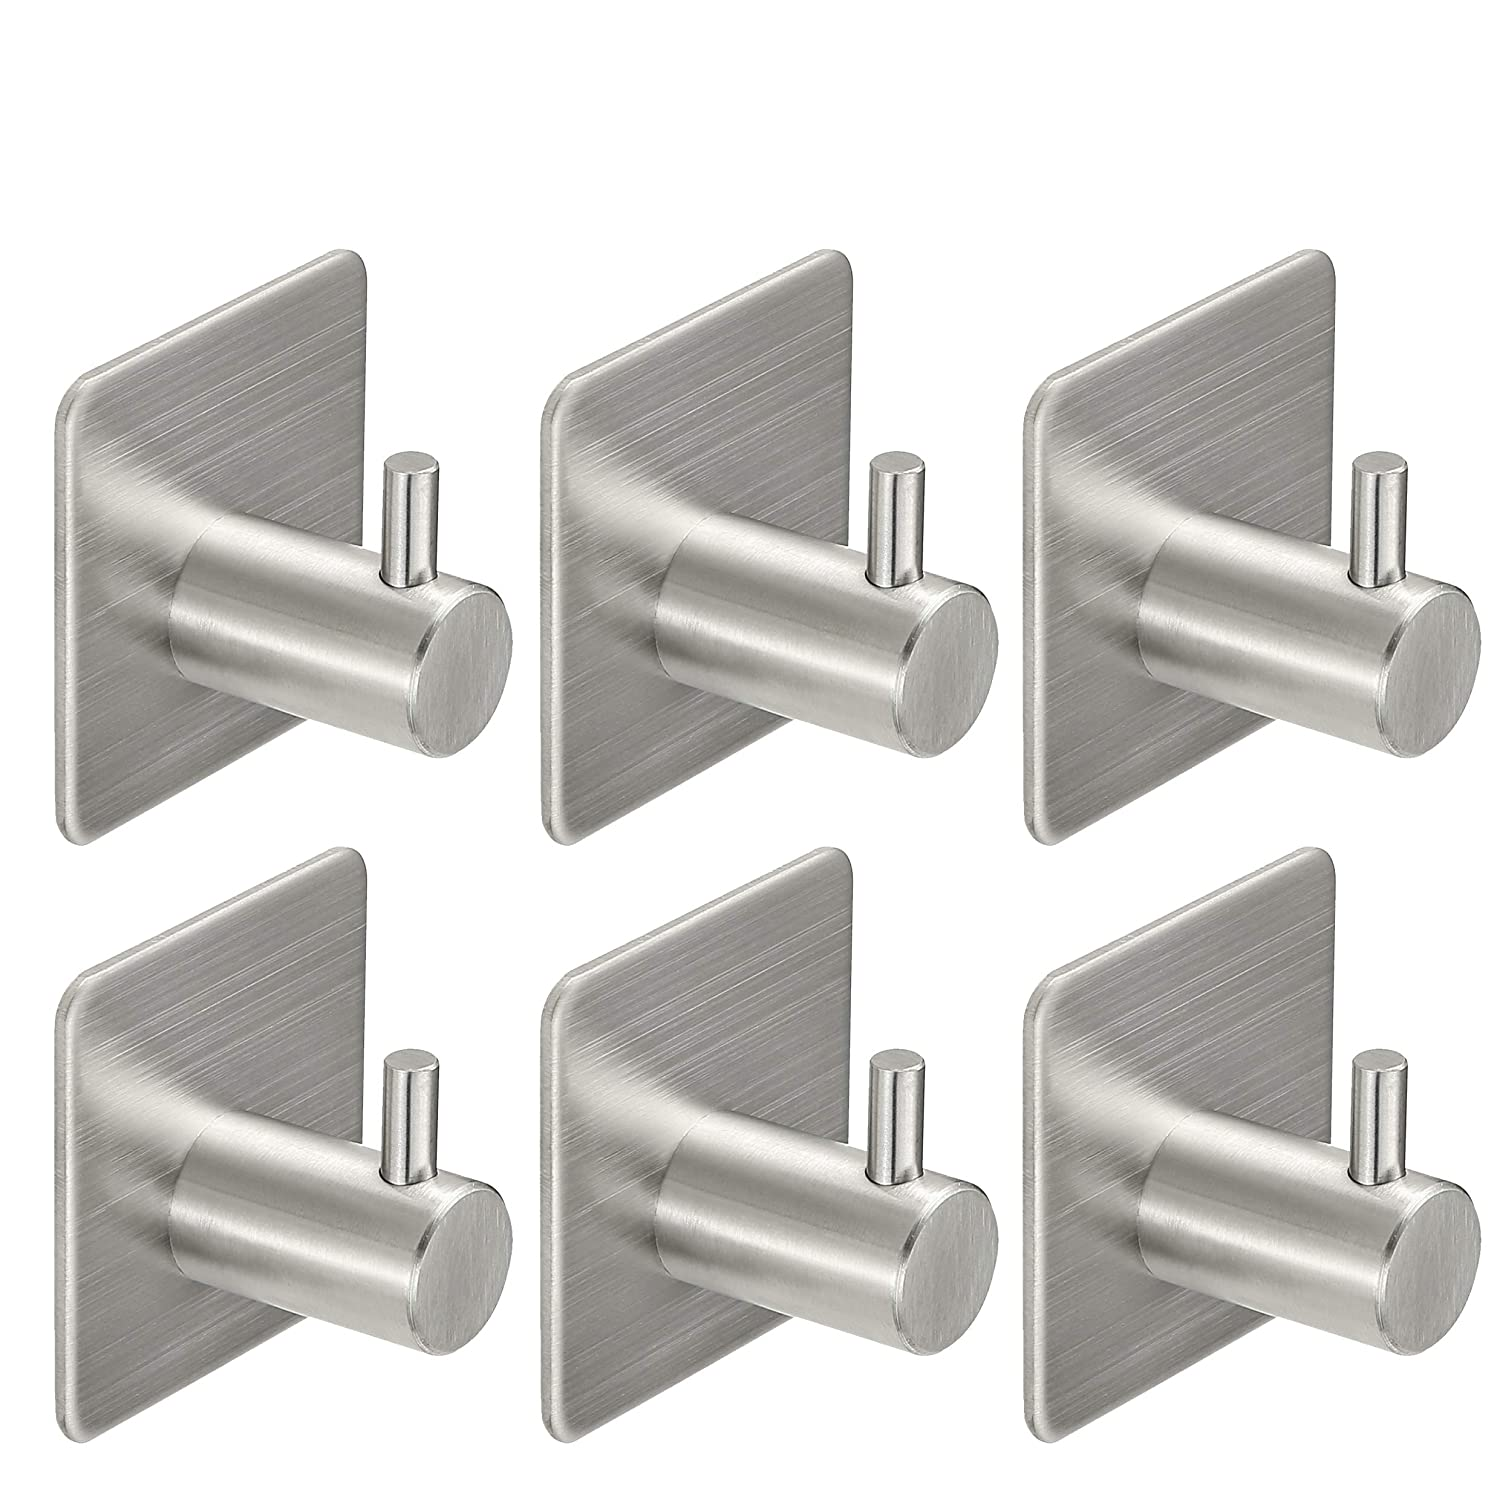 Monfish Adhesive Door Robe Towel Hooks Kitchen Sticky Hooks 304 Stainless Steel (Pack of 6) hook02